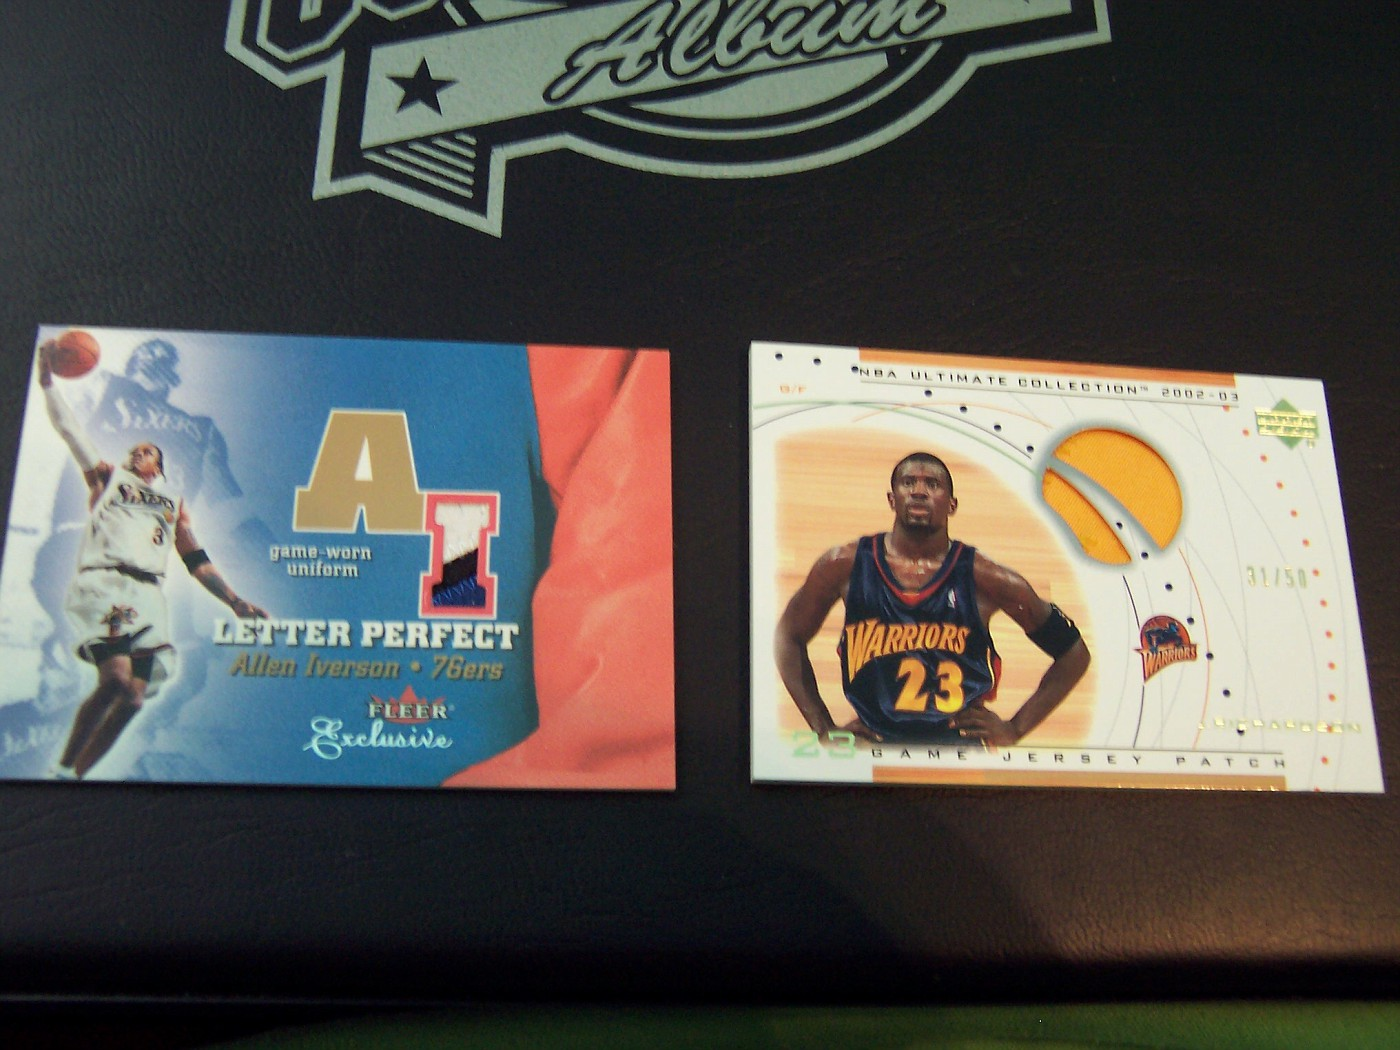 Iverson and Richardson patches